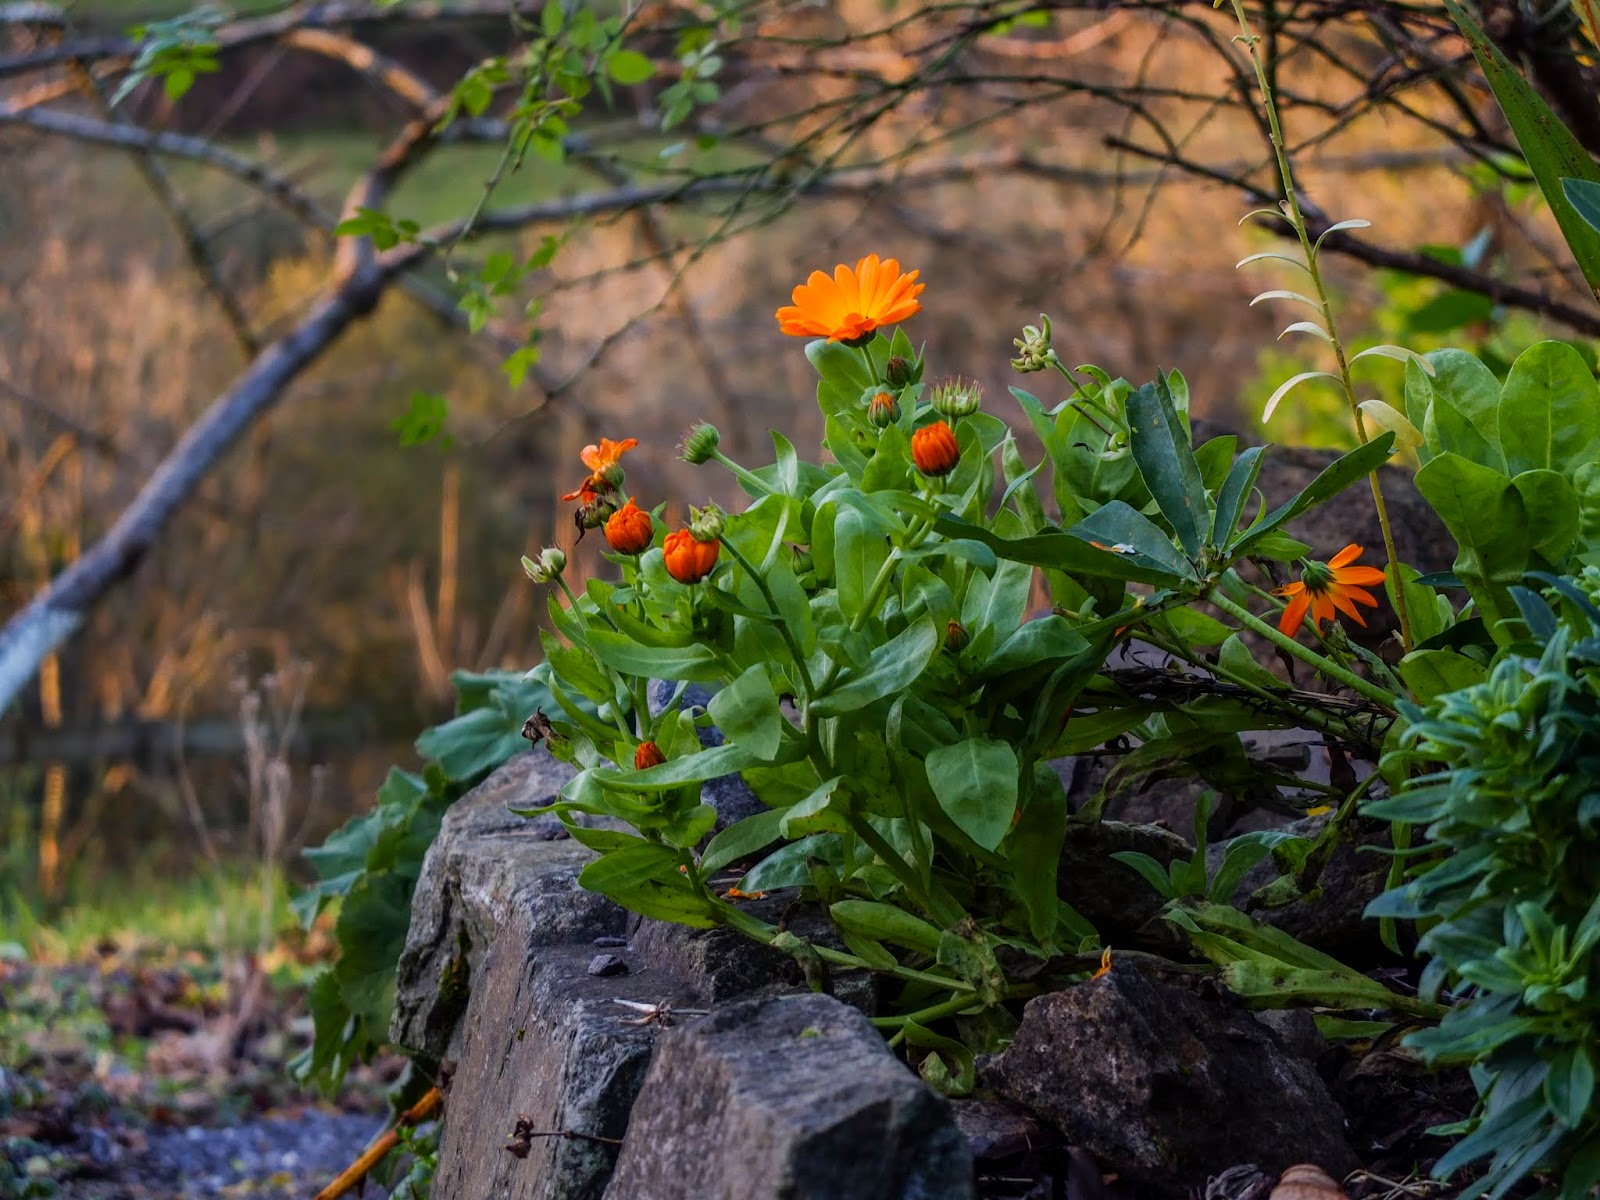 Orange Calendula flowers in a rockery at sunset.